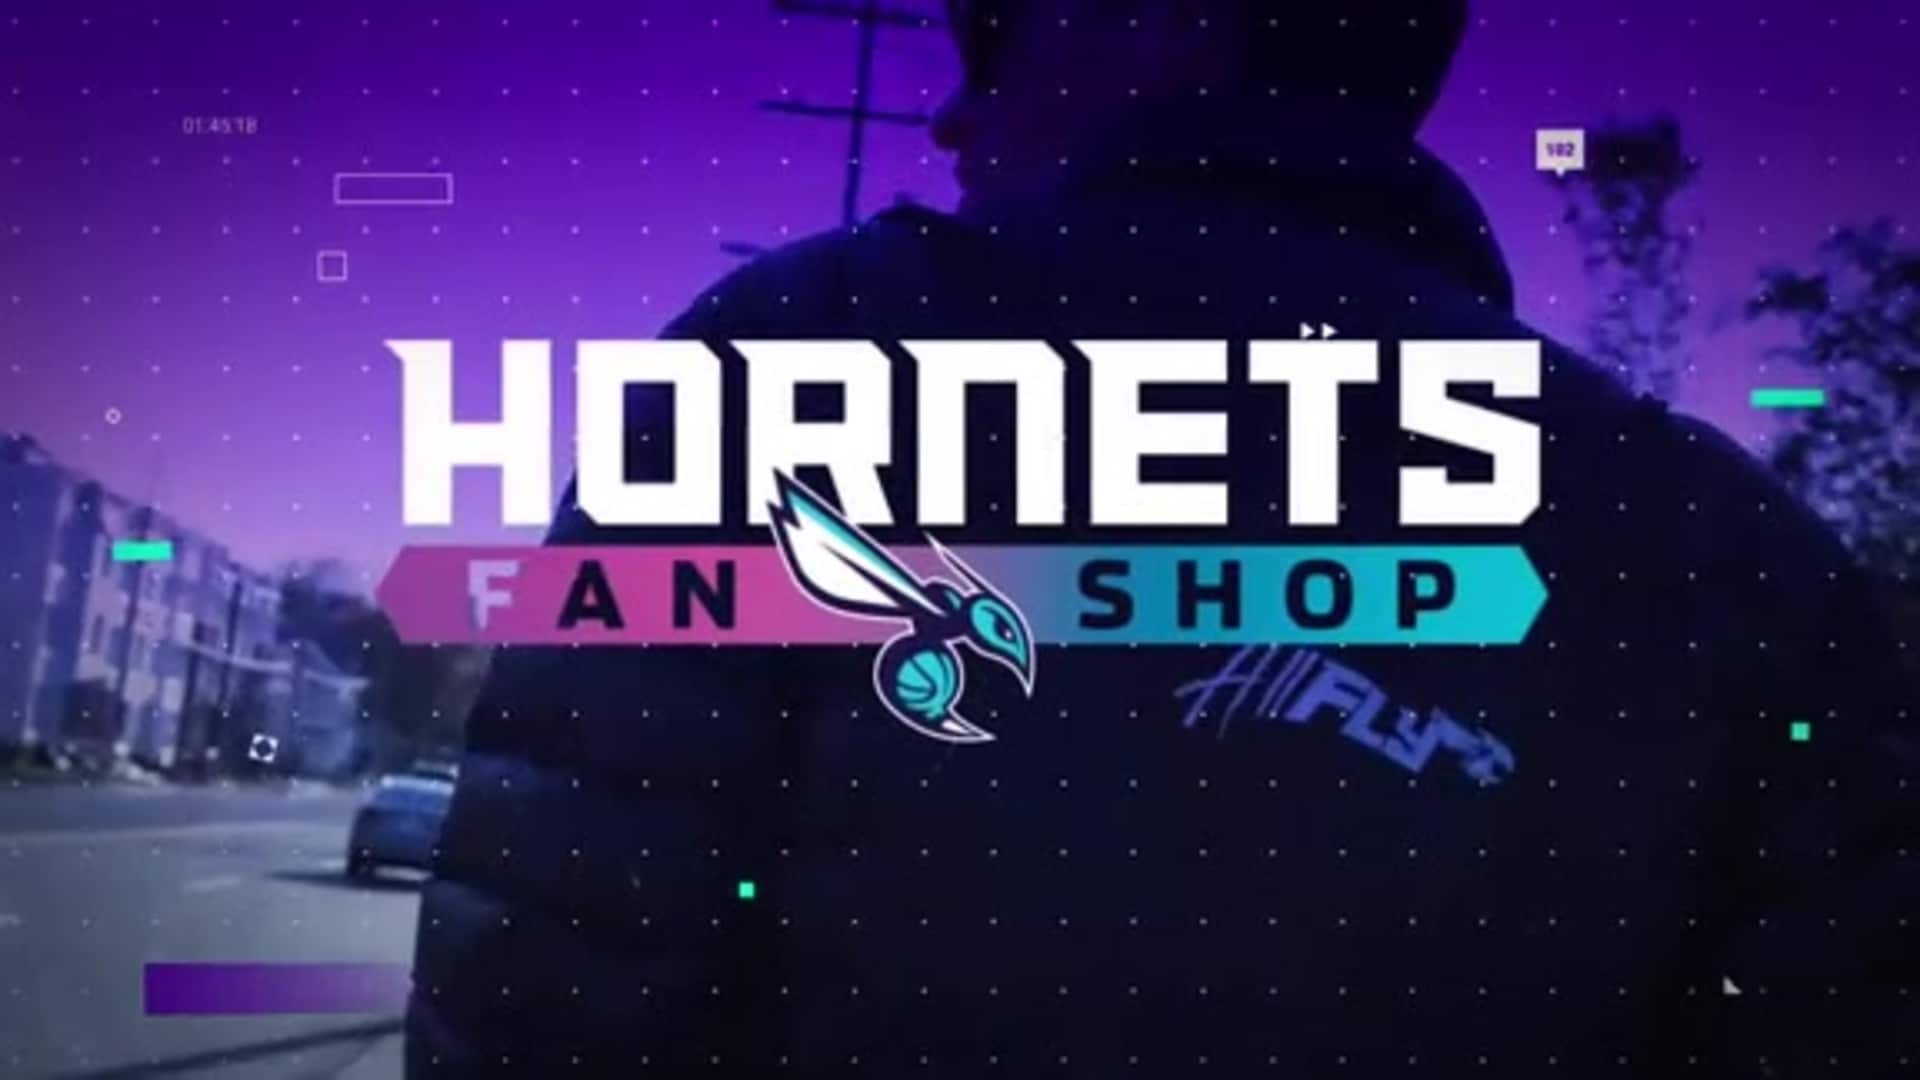 Welcome to the Hornets Fan Shop